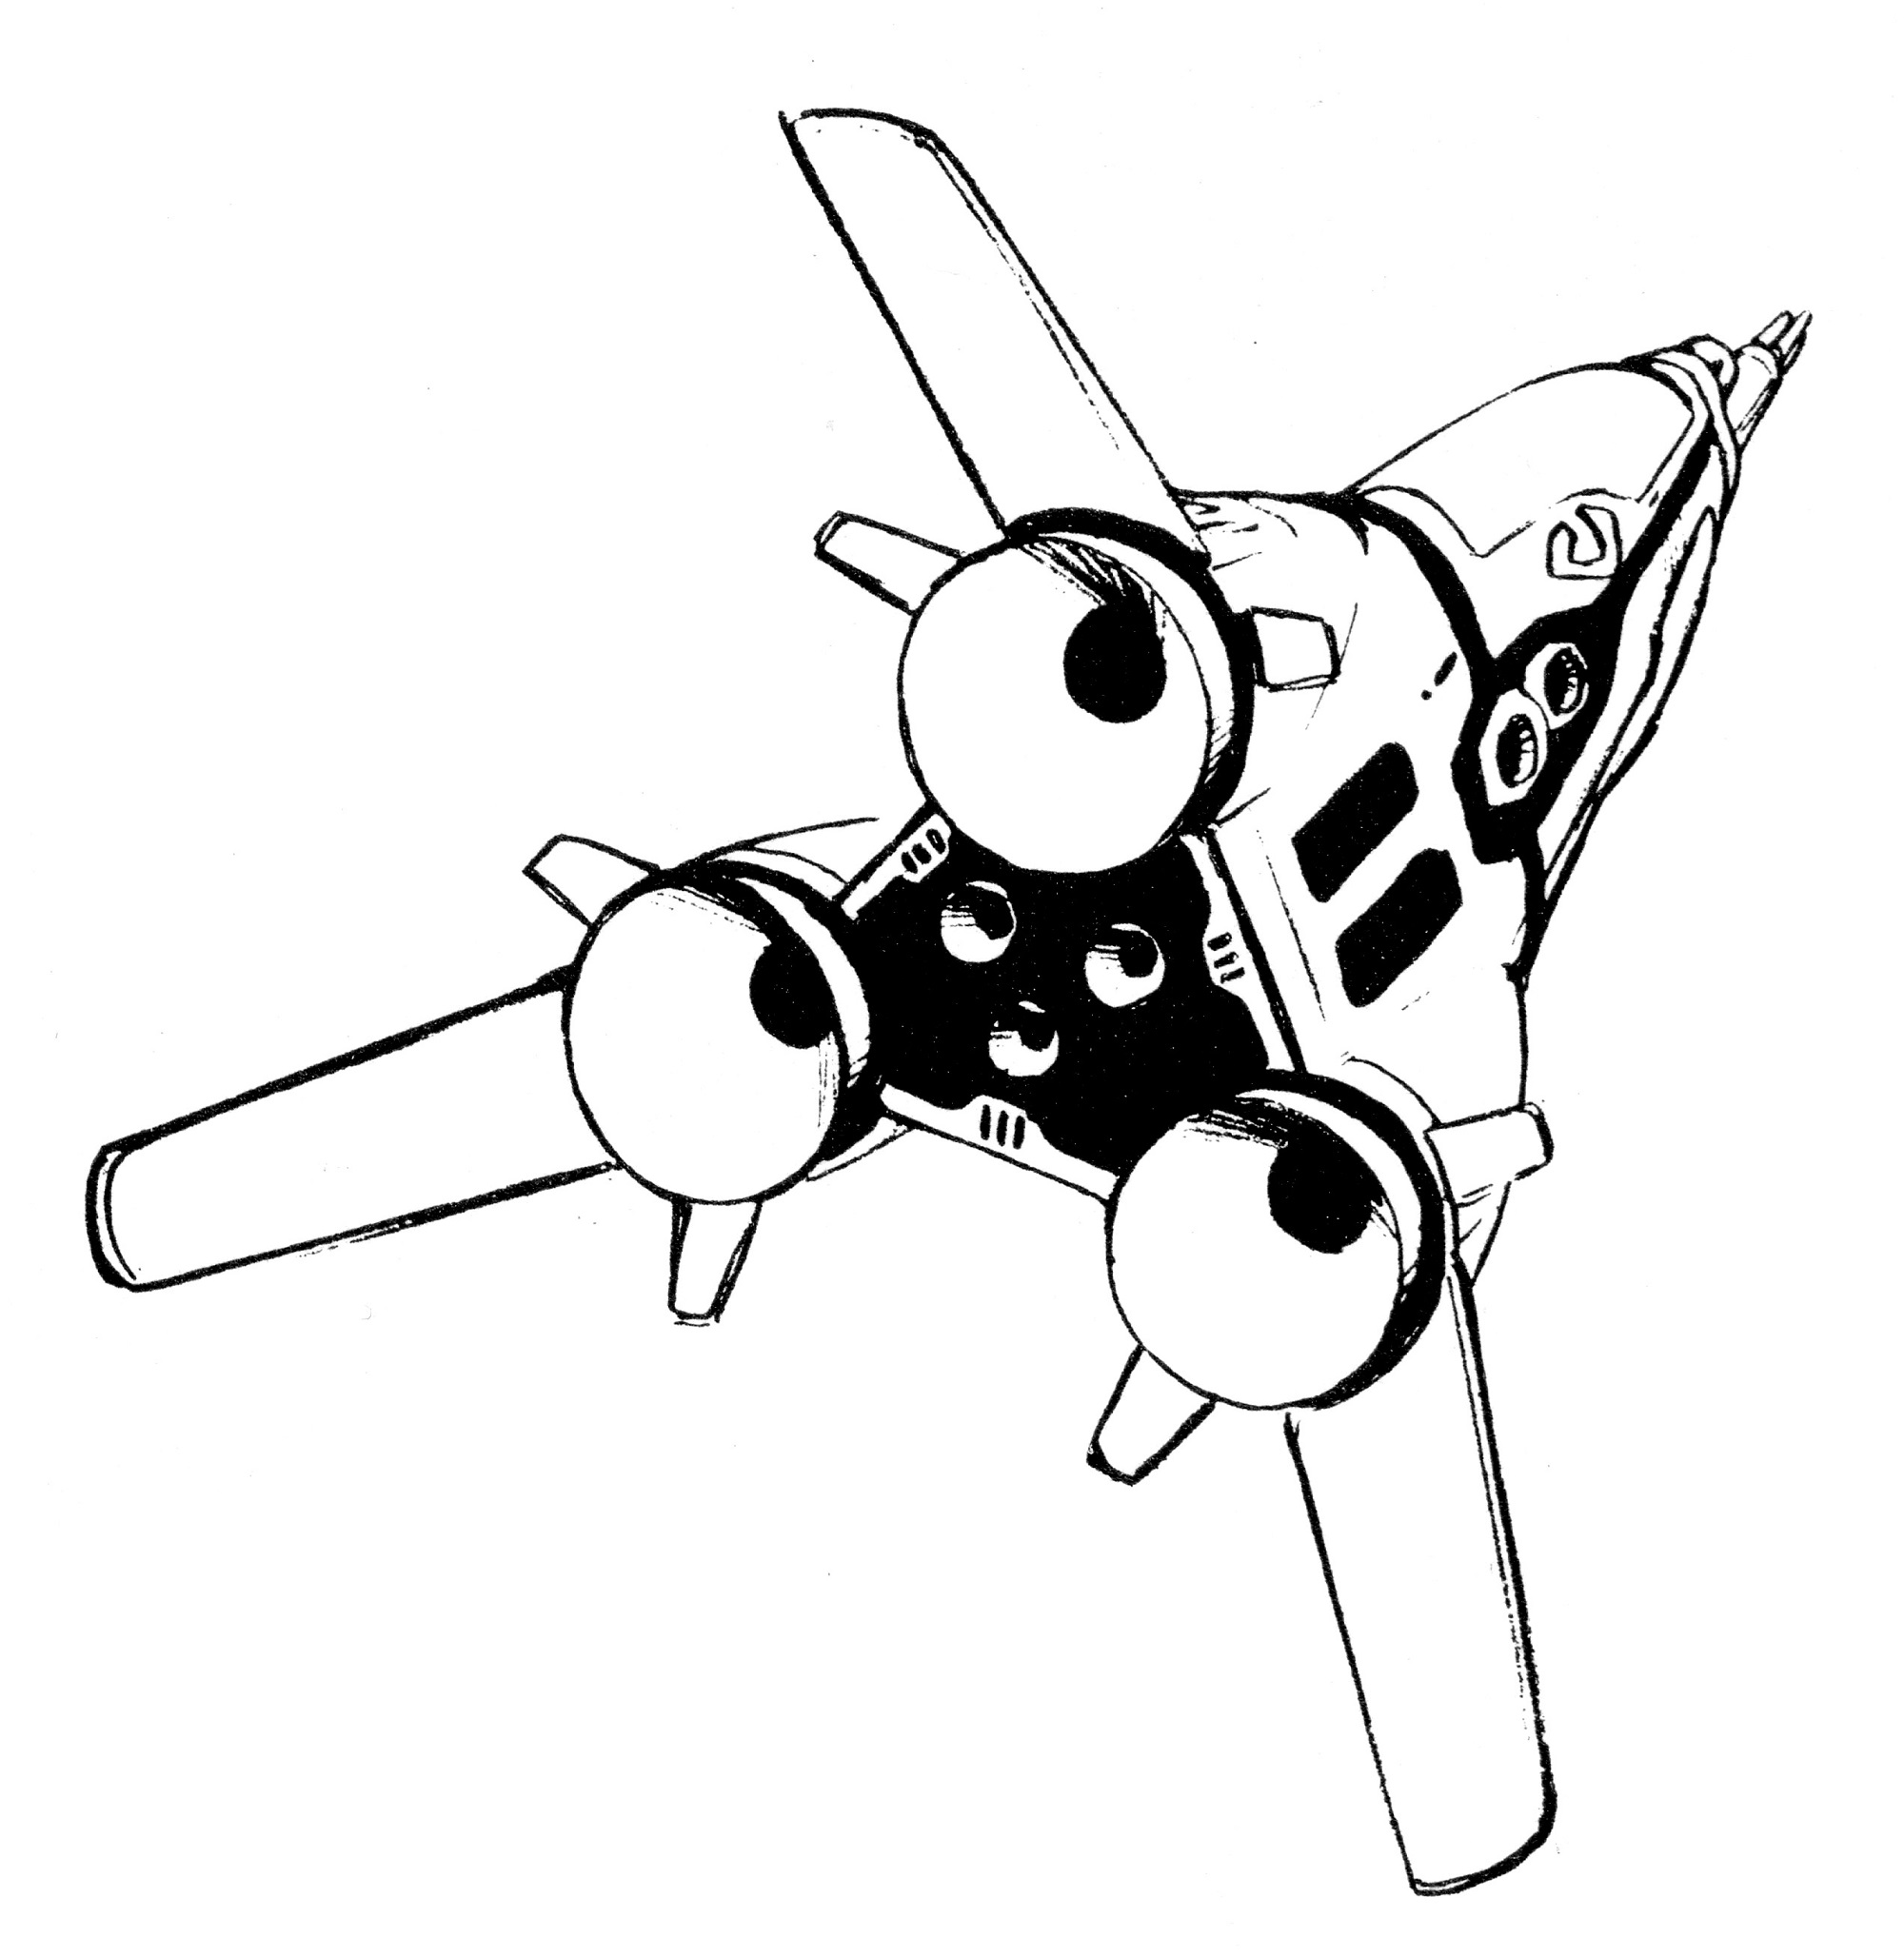 A-FP2 Gnerl Fighter Pod Aerospace Fighter Attack Plane 5